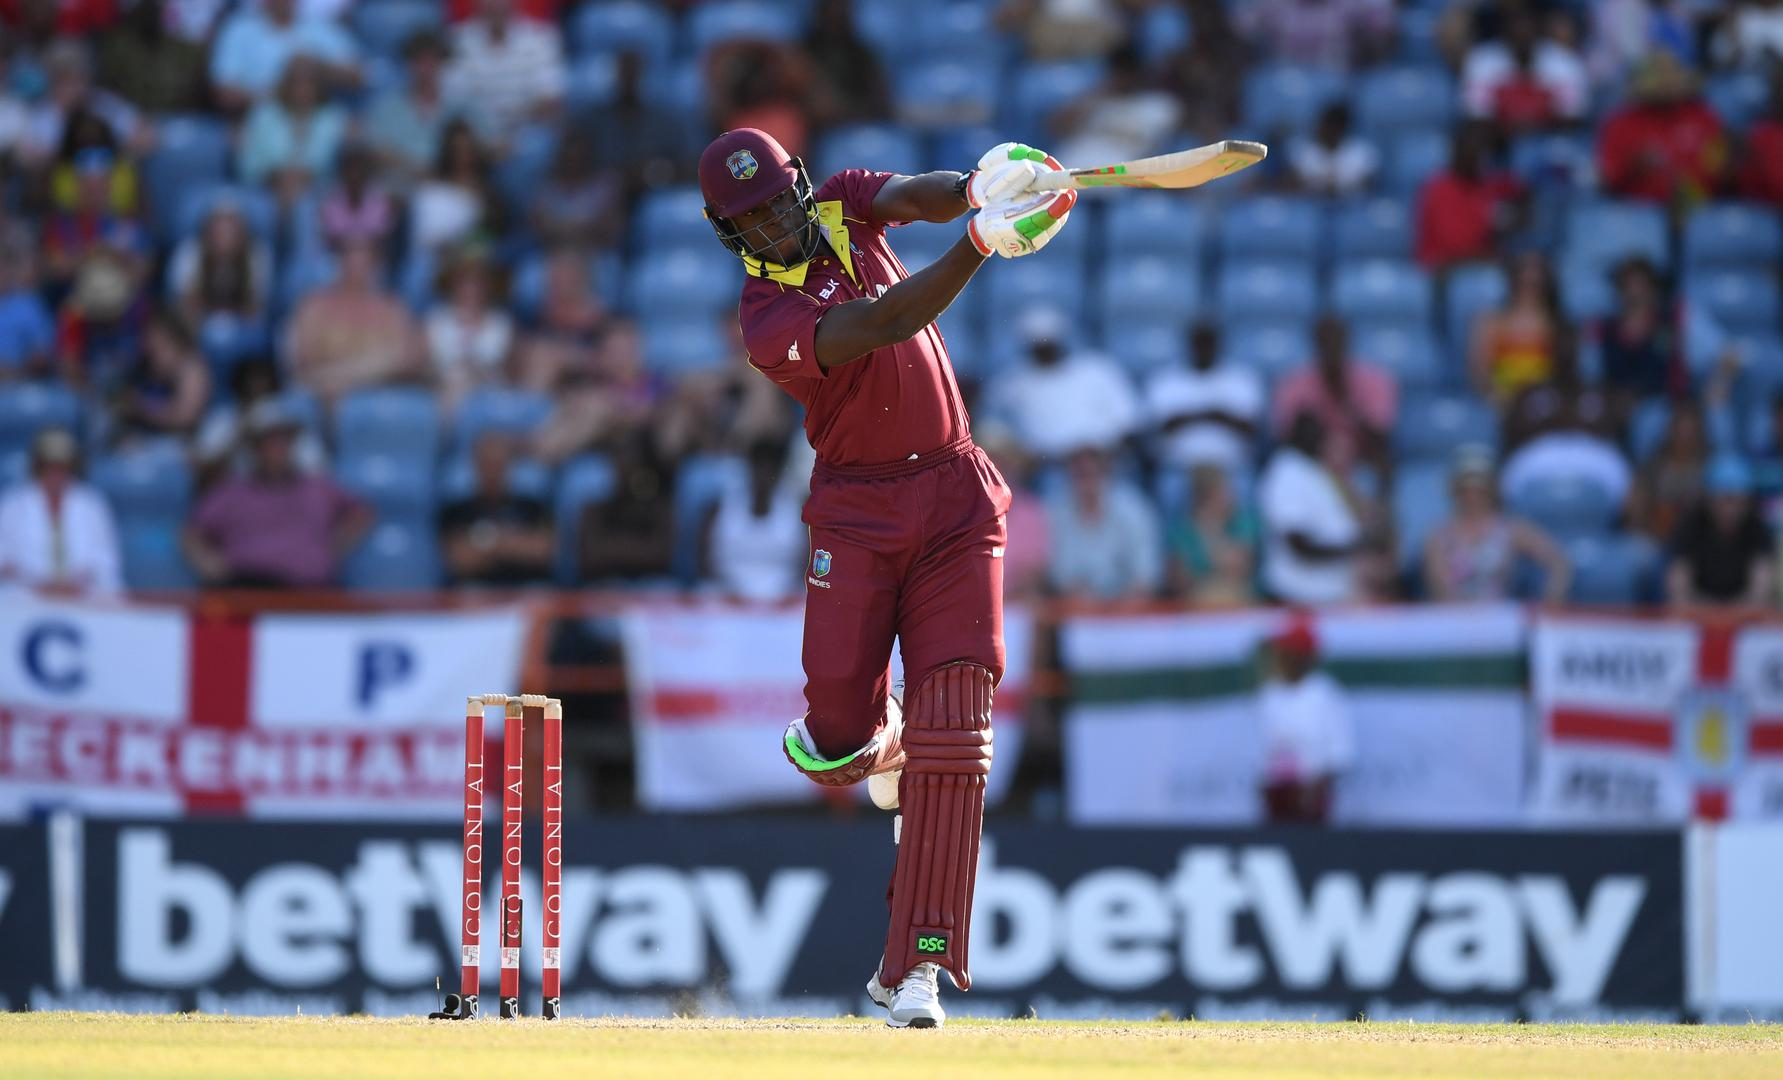 West Indies cricketer Carlos Brathwaite in action.